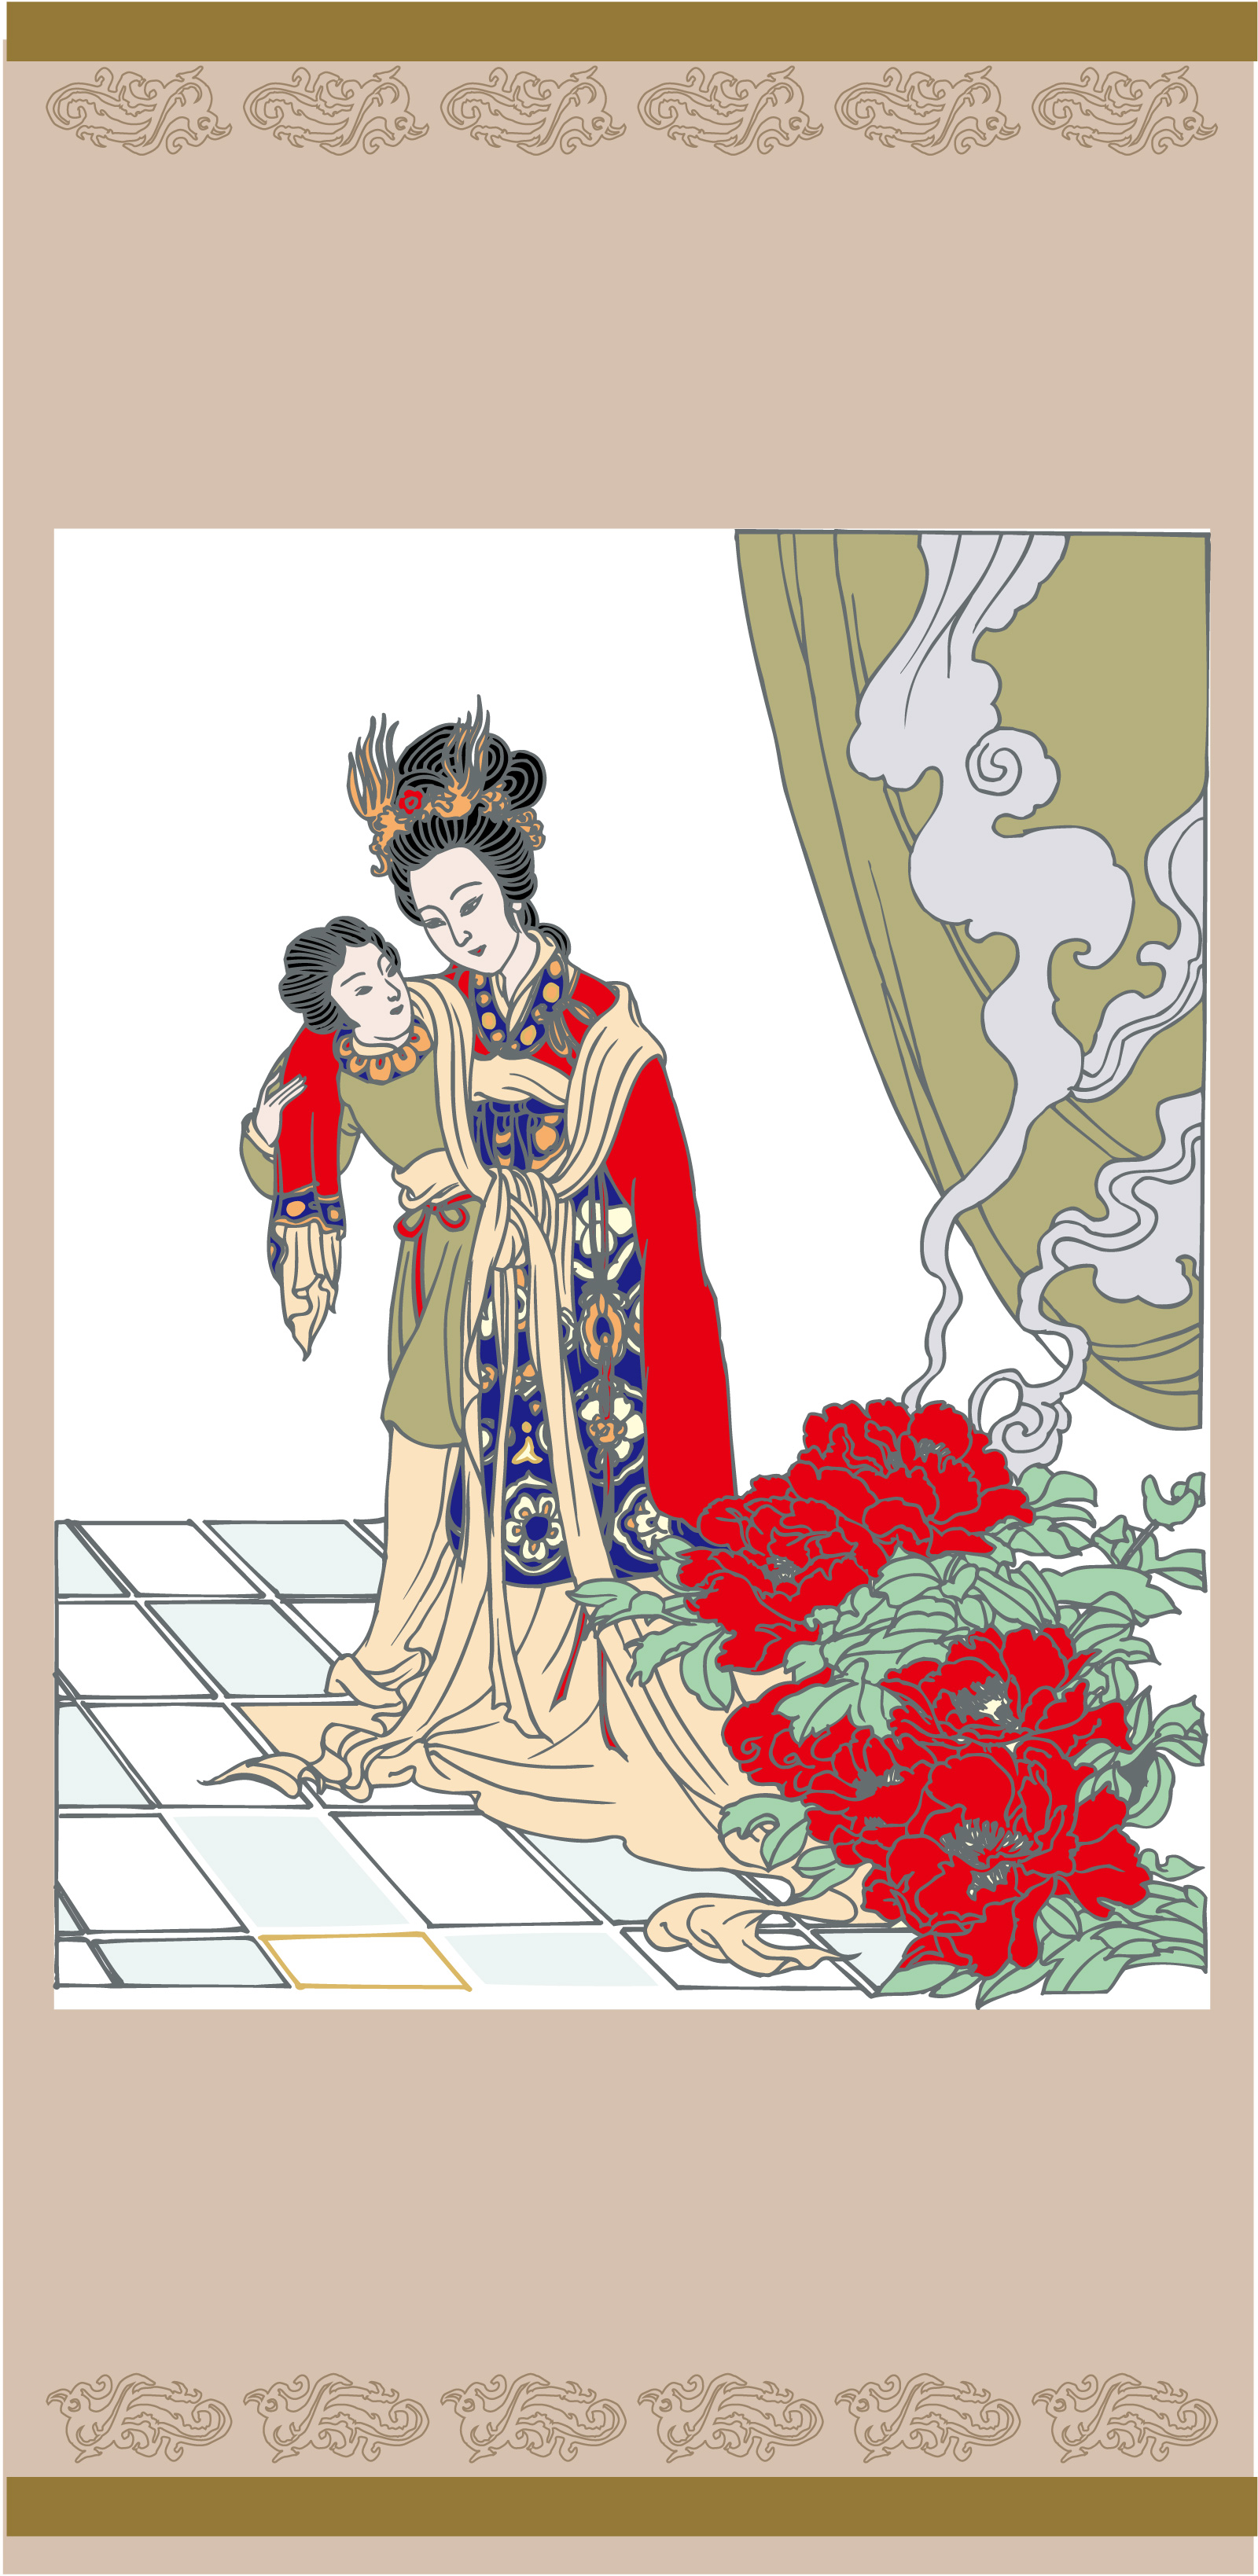 Graceful Chinese ancient ladies image - China Illustrations Vectors AI ESP Free Download #.2